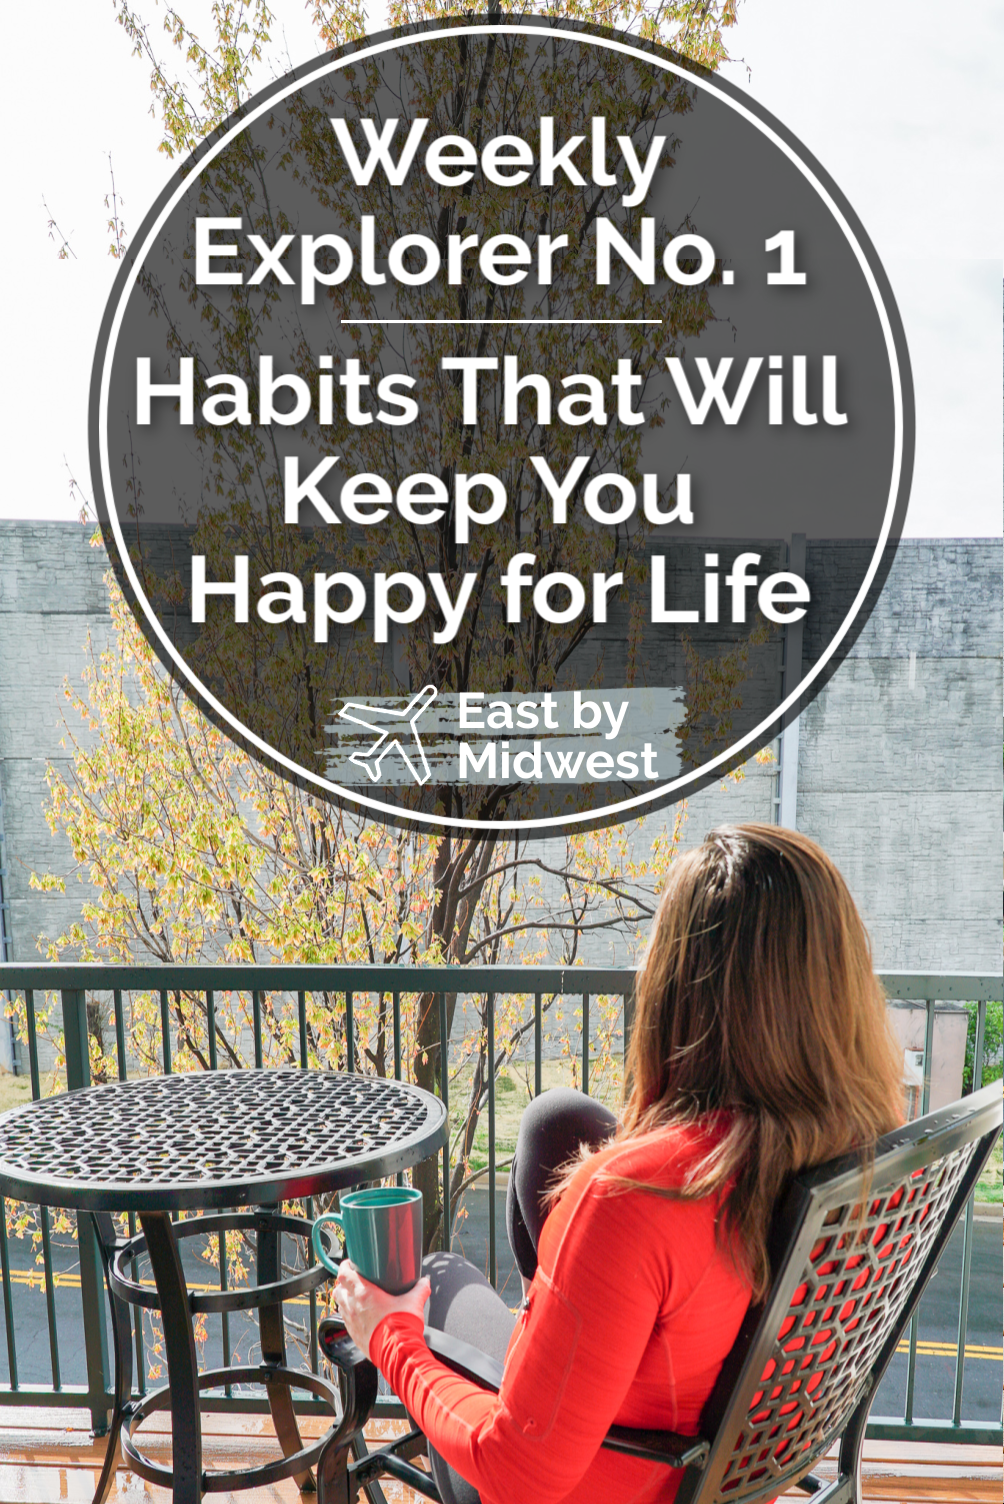 Weekly Explorer No. 1: Habits That Will Keep You Happy for Life